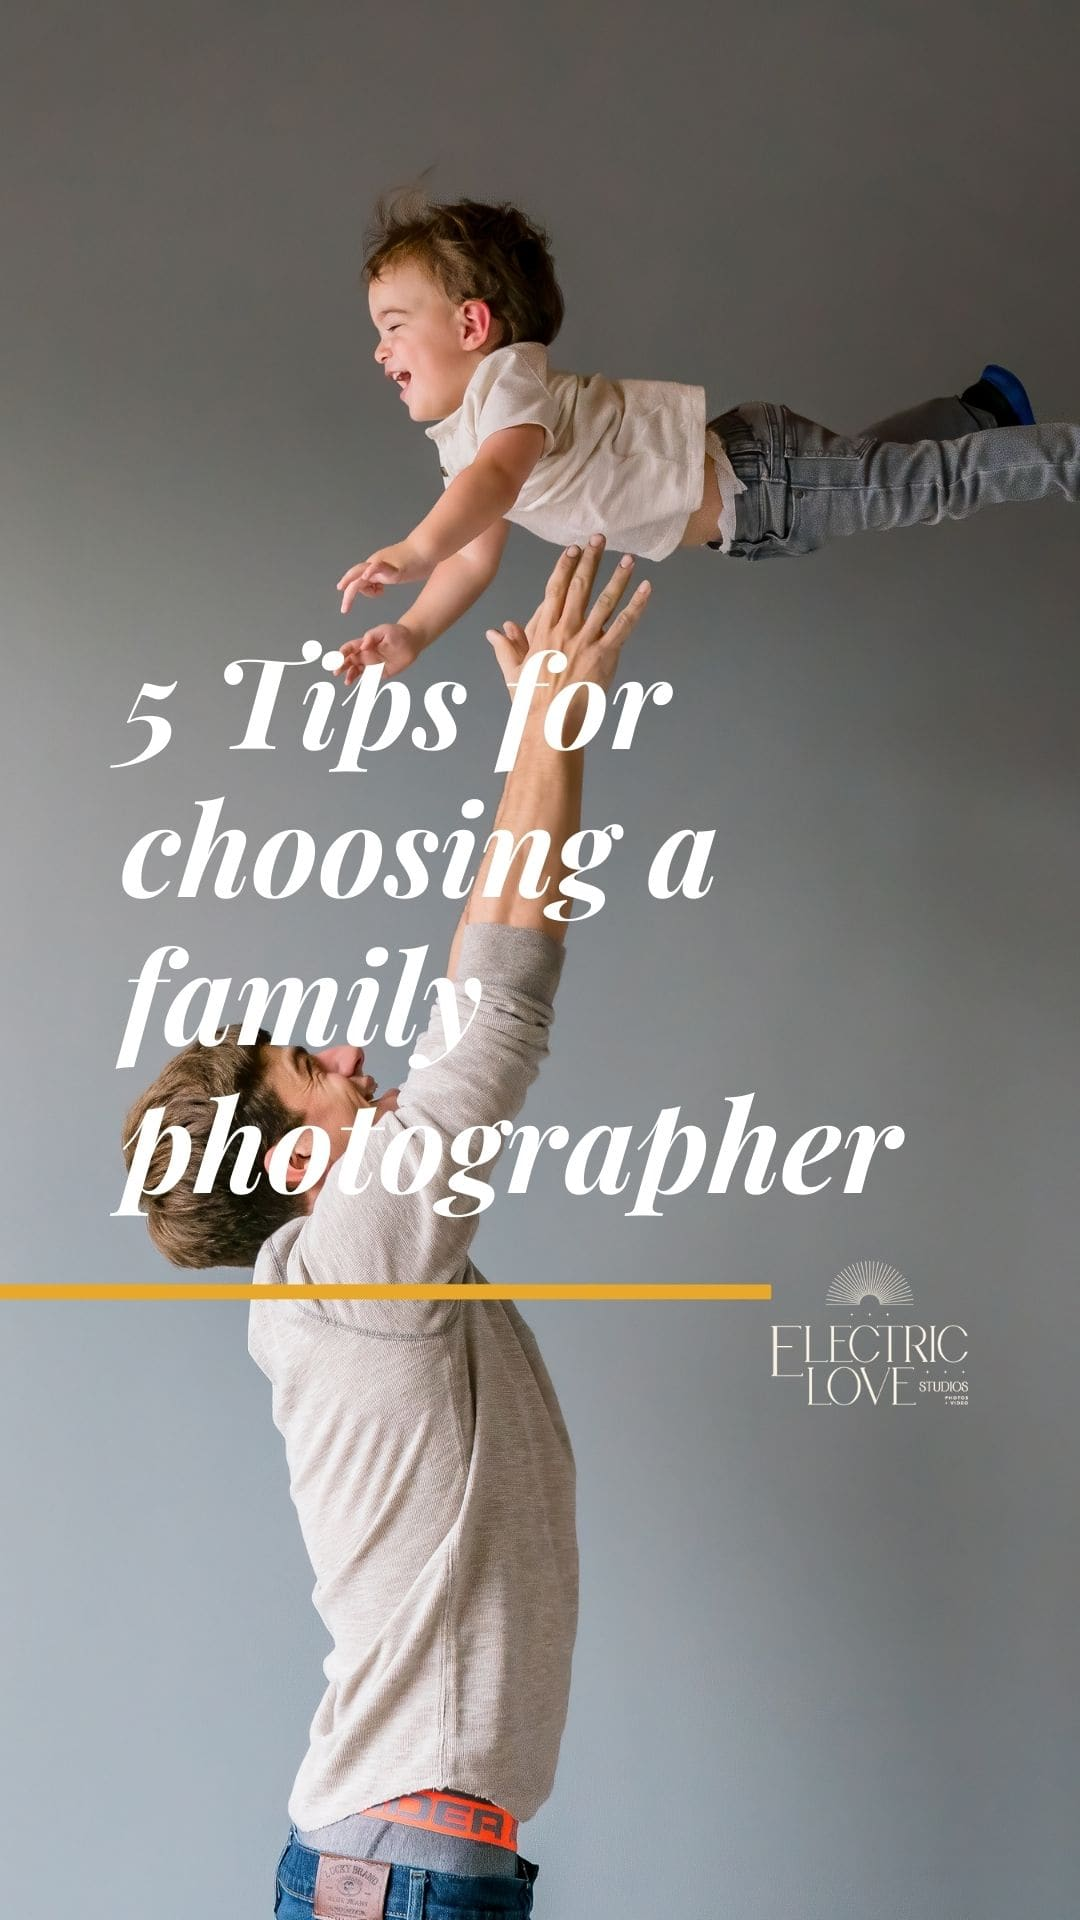 7-tips-for-choosing-a-family-photographer